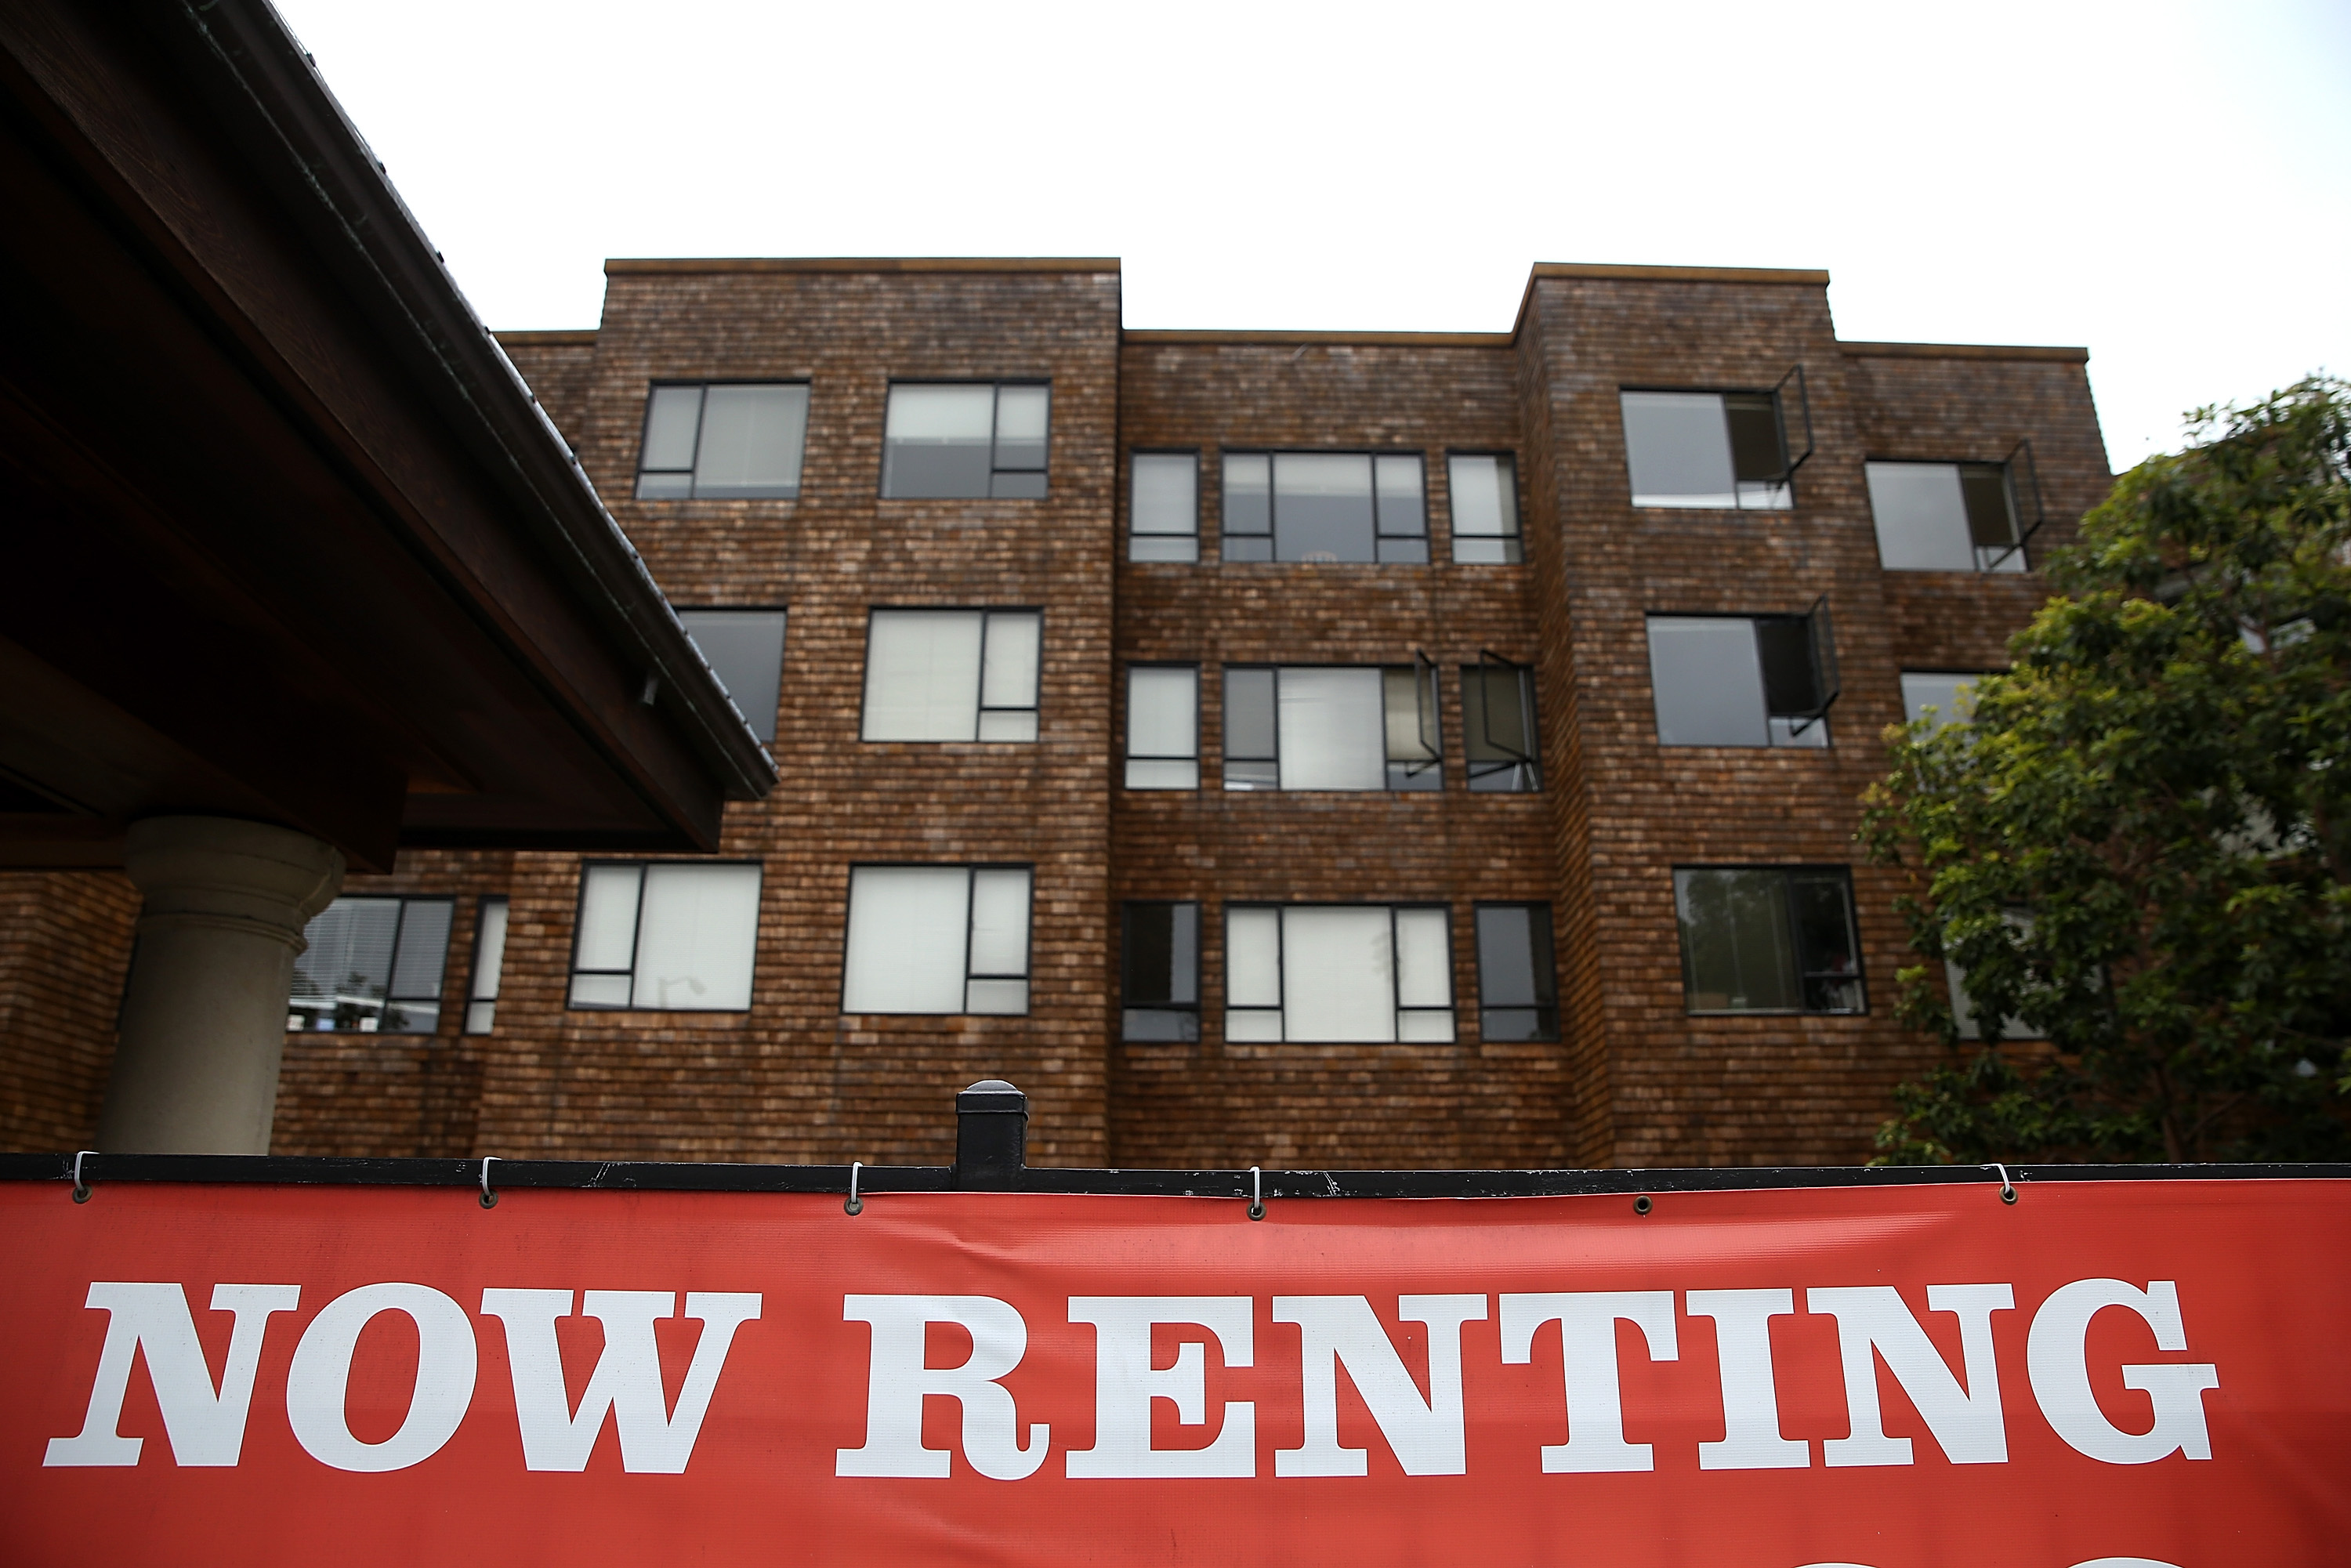 Apartments for rent in San Francisco on April 21, 2015.